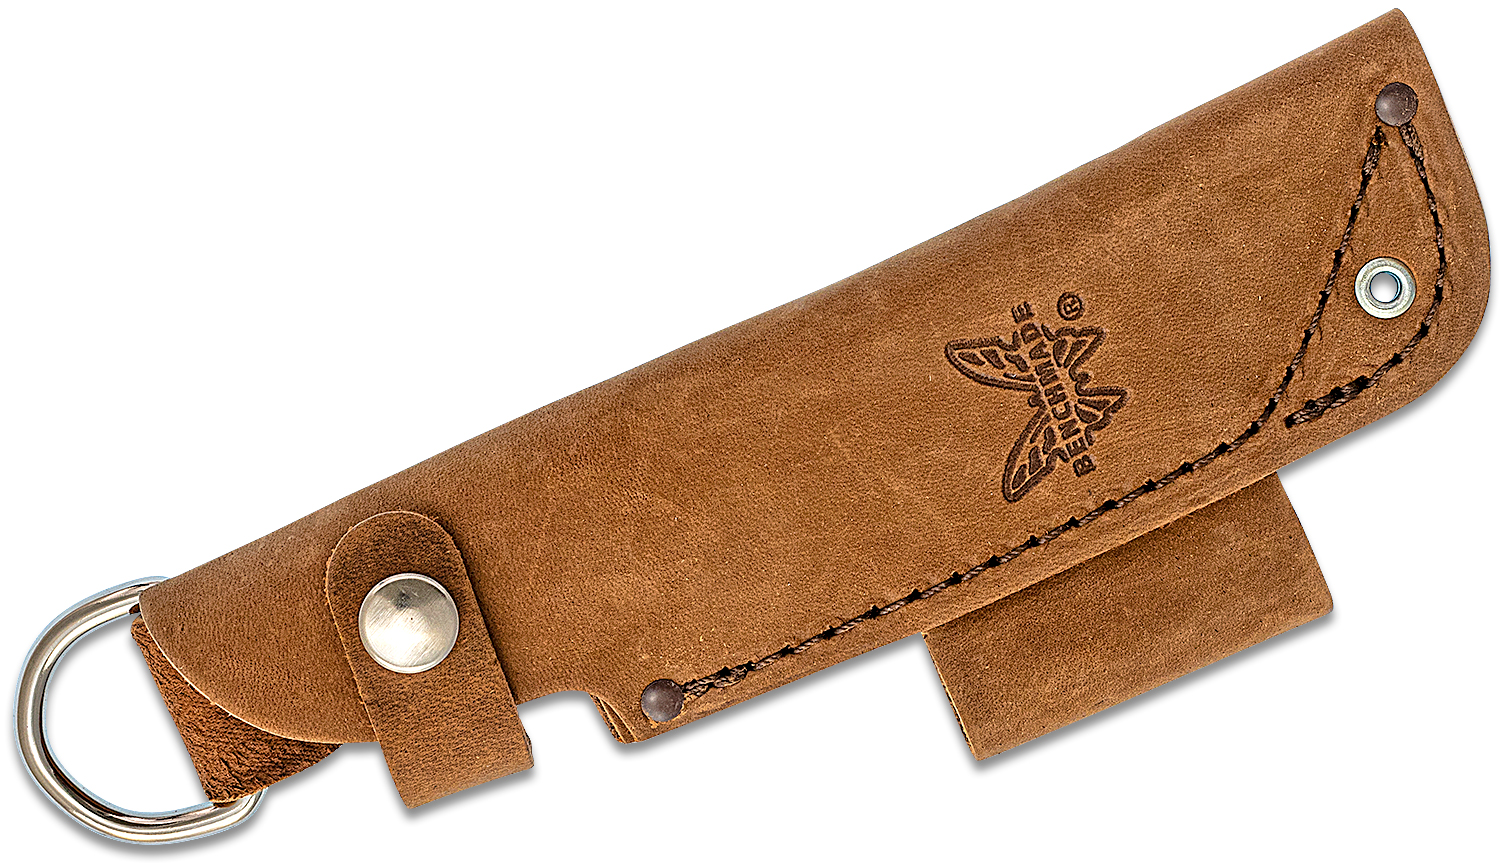 Benchmade Leather Sheath for Bushcrafter 162 and 162-1